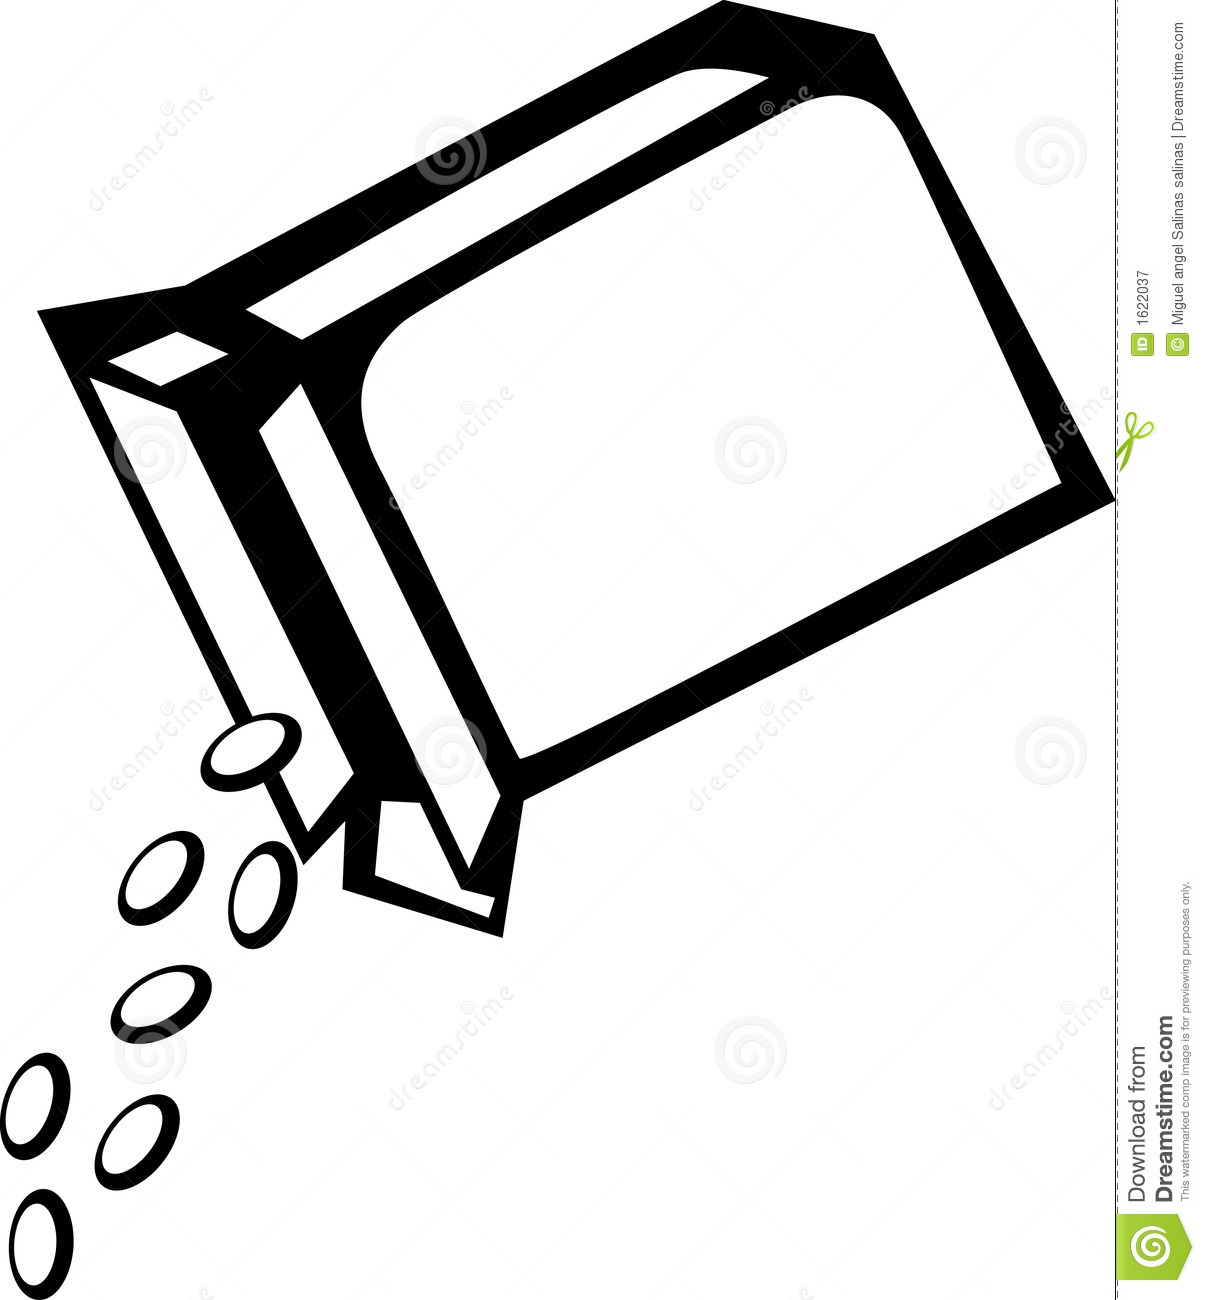 Cereal Box Vector Illustration Royalty Free Stock